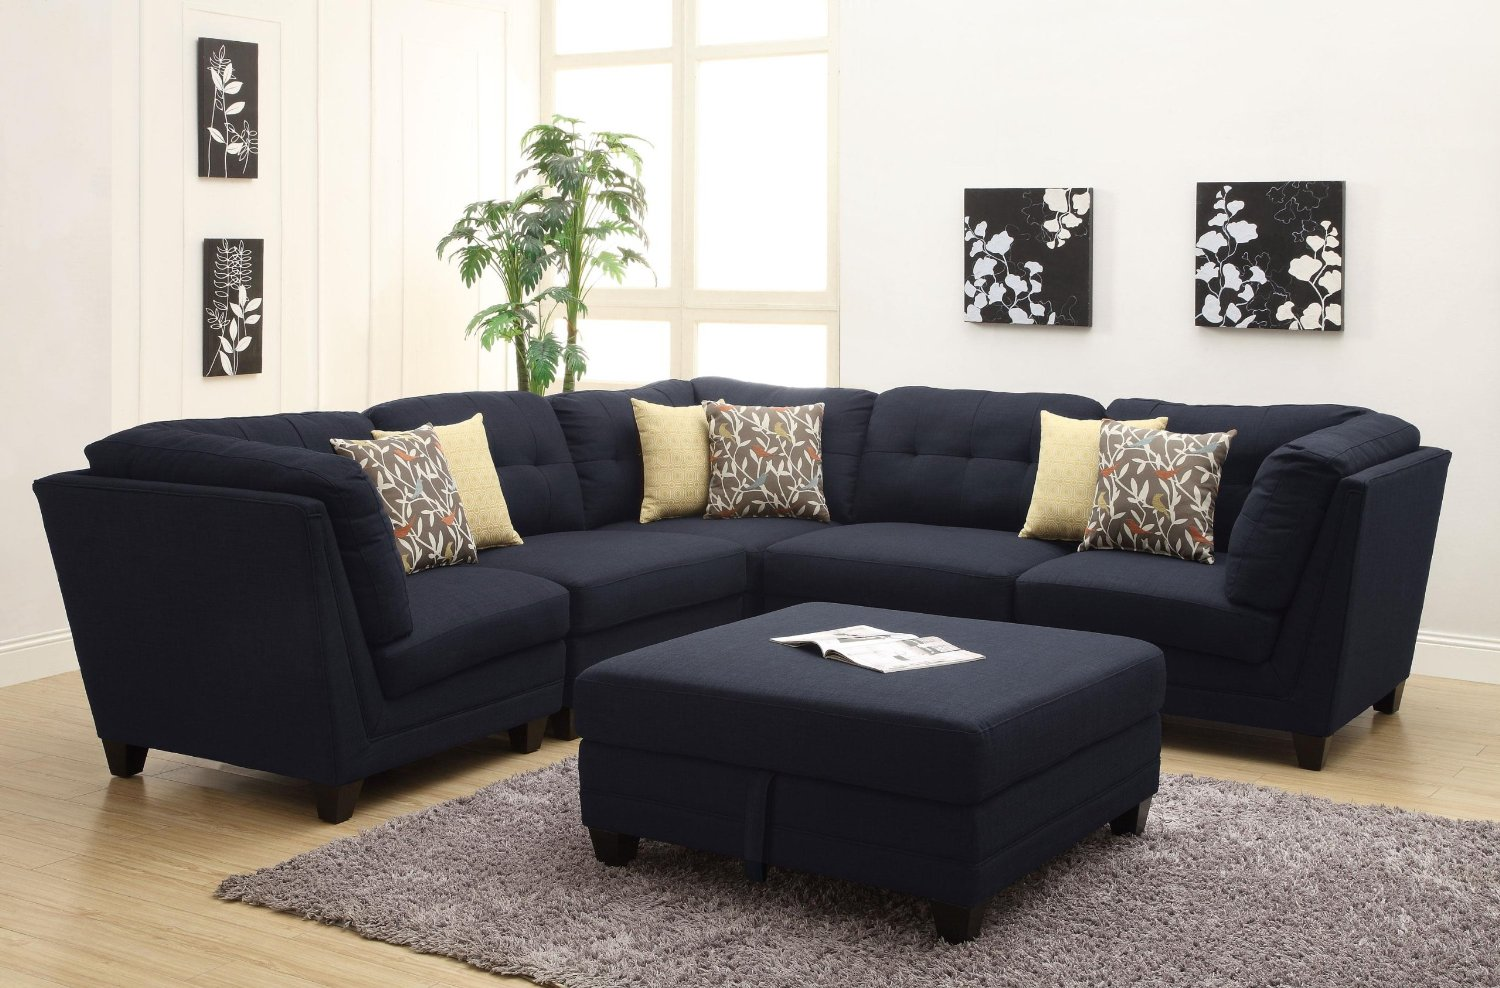 Most Comfortable Modern Sectionals Most Comfortable Sectional Sofa Most Comfortable Sectional